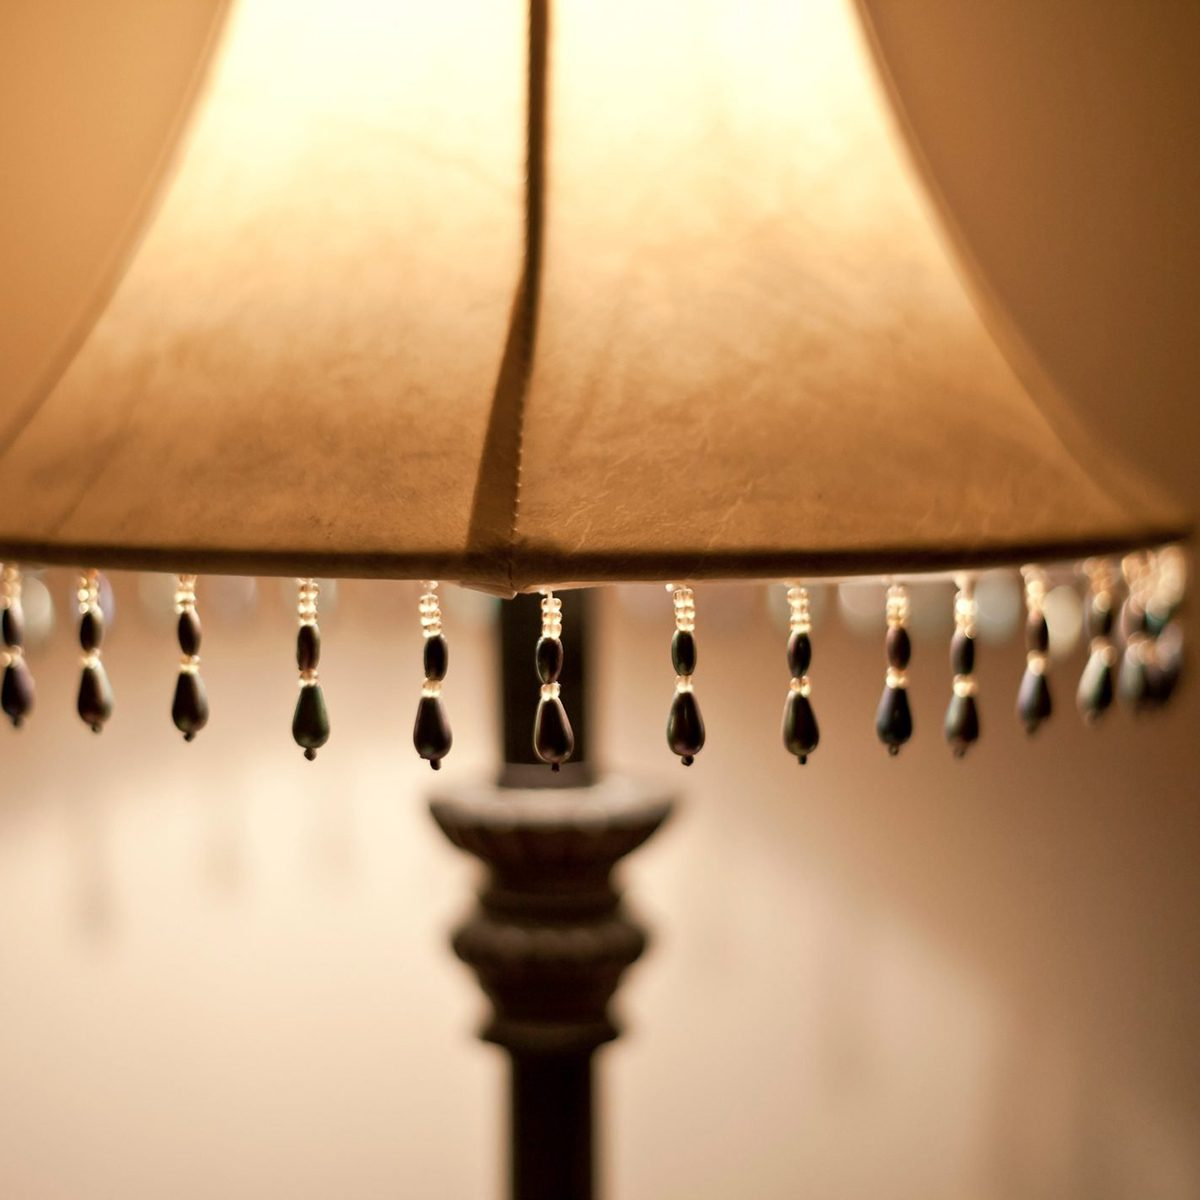 Close-up Of an illuminated lamp in a dark room, with bead detail on the lamp shade.